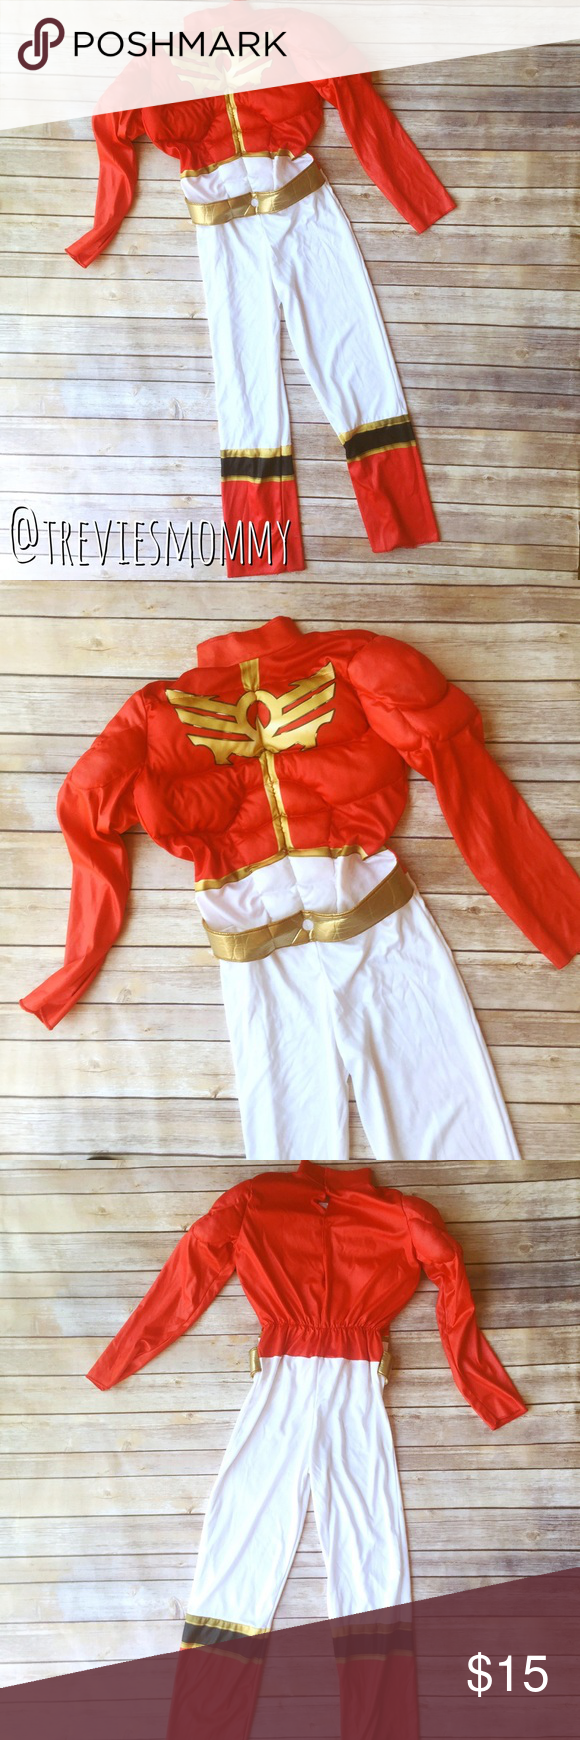 Power Rangers Megaforce costume! Power Rangers Megaforce Halloween ...